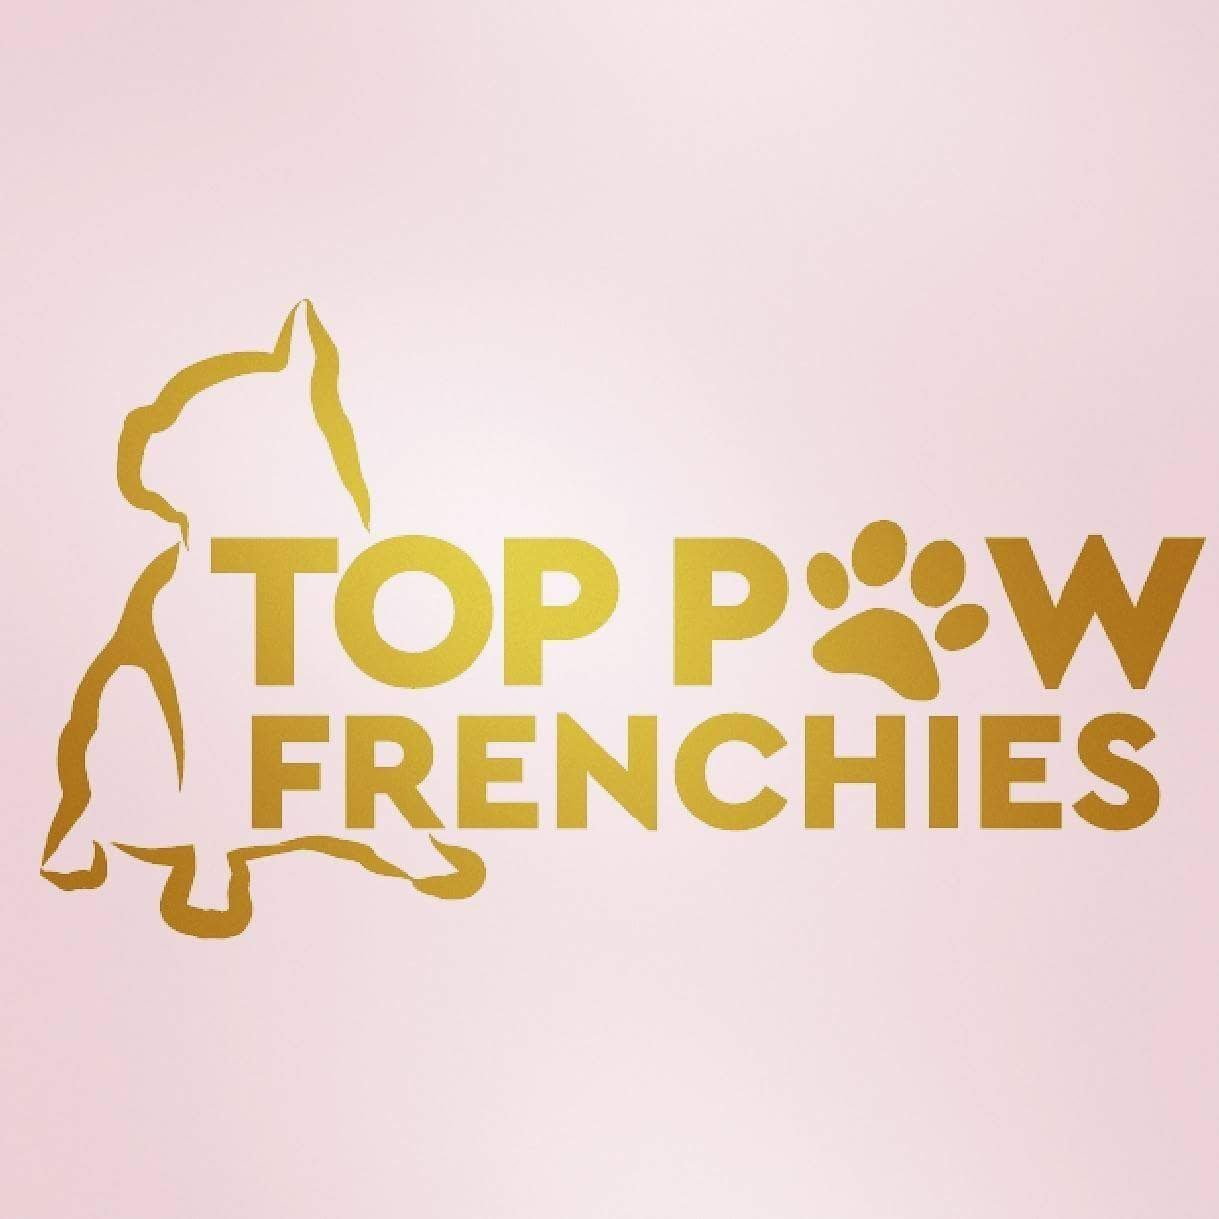 TOP PAW FRENCHIES